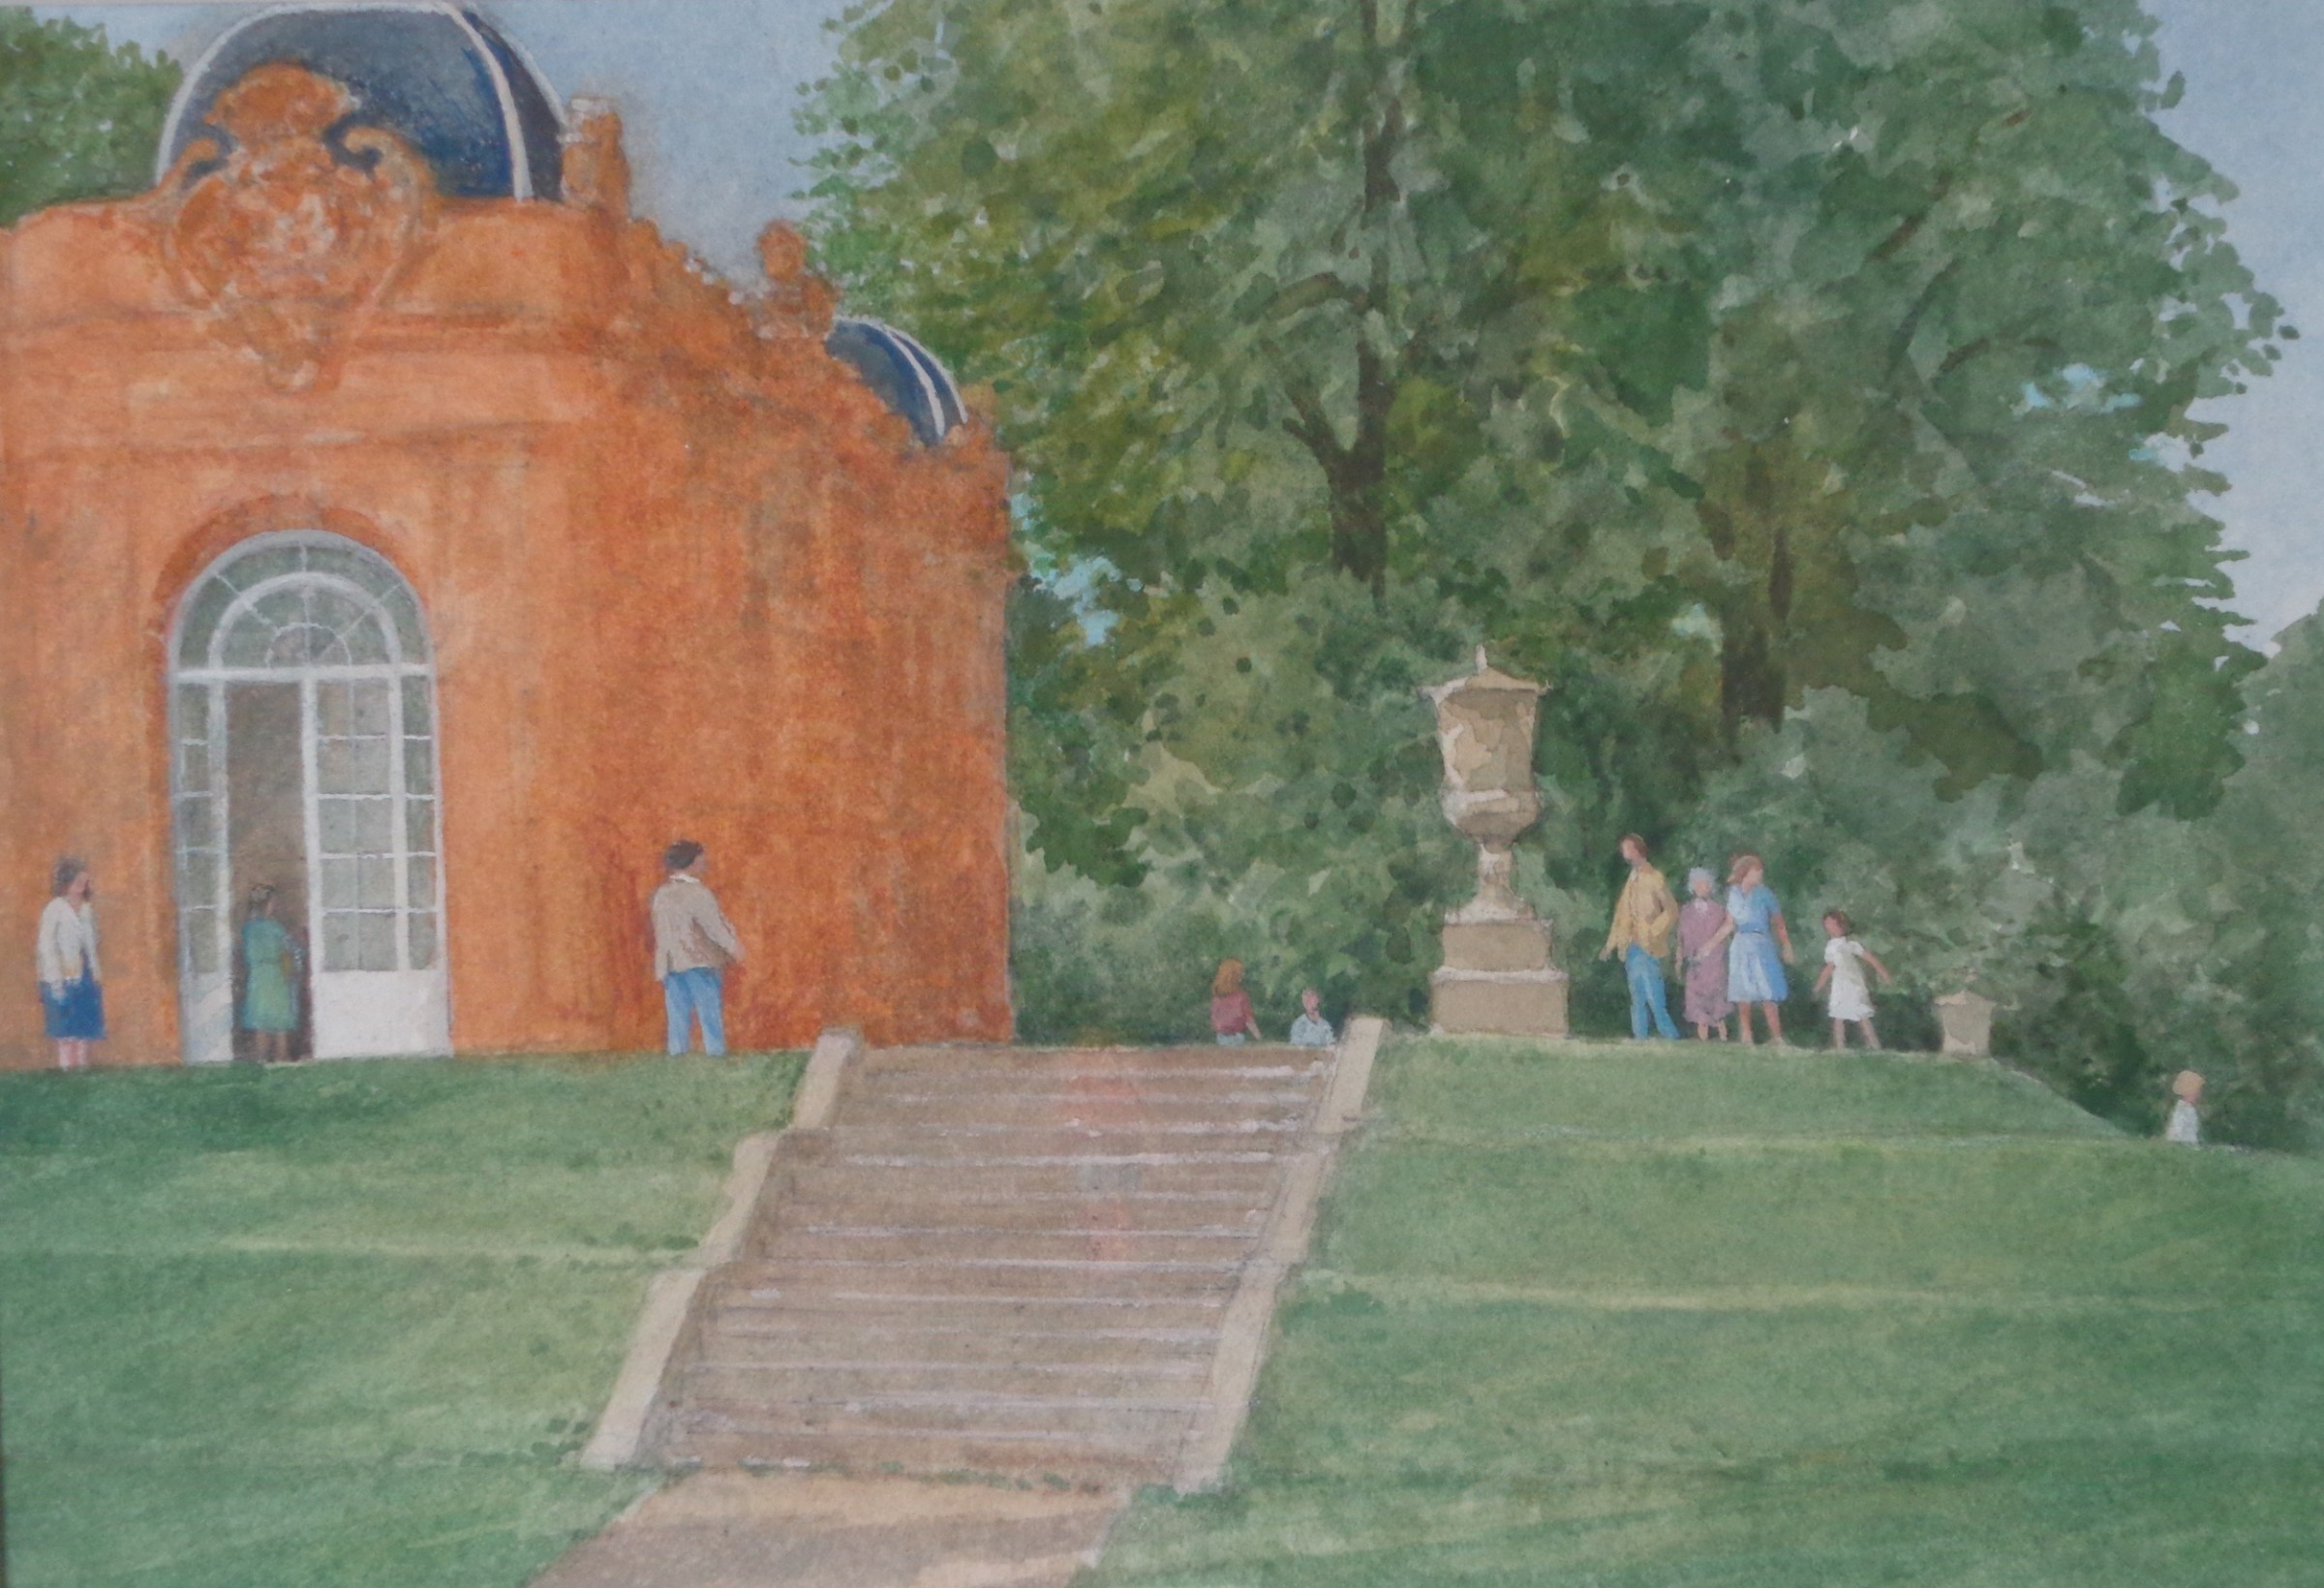 """<span class=""""link fancybox-details-link""""><a href=""""/artists/90-david-payne/works/11330-david-payne-to-the-orangery-wrest-park/"""">View Detail Page</a></span><div class=""""artist""""><span class=""""artist""""><strong>David Payne</strong></span></div><div class=""""title""""><em>To the Orangery - Wrest Park</em></div><div class=""""medium"""">watercolour</div><div class=""""dimensions"""">35x42cm</div><div class=""""price"""">£425.00</div>"""